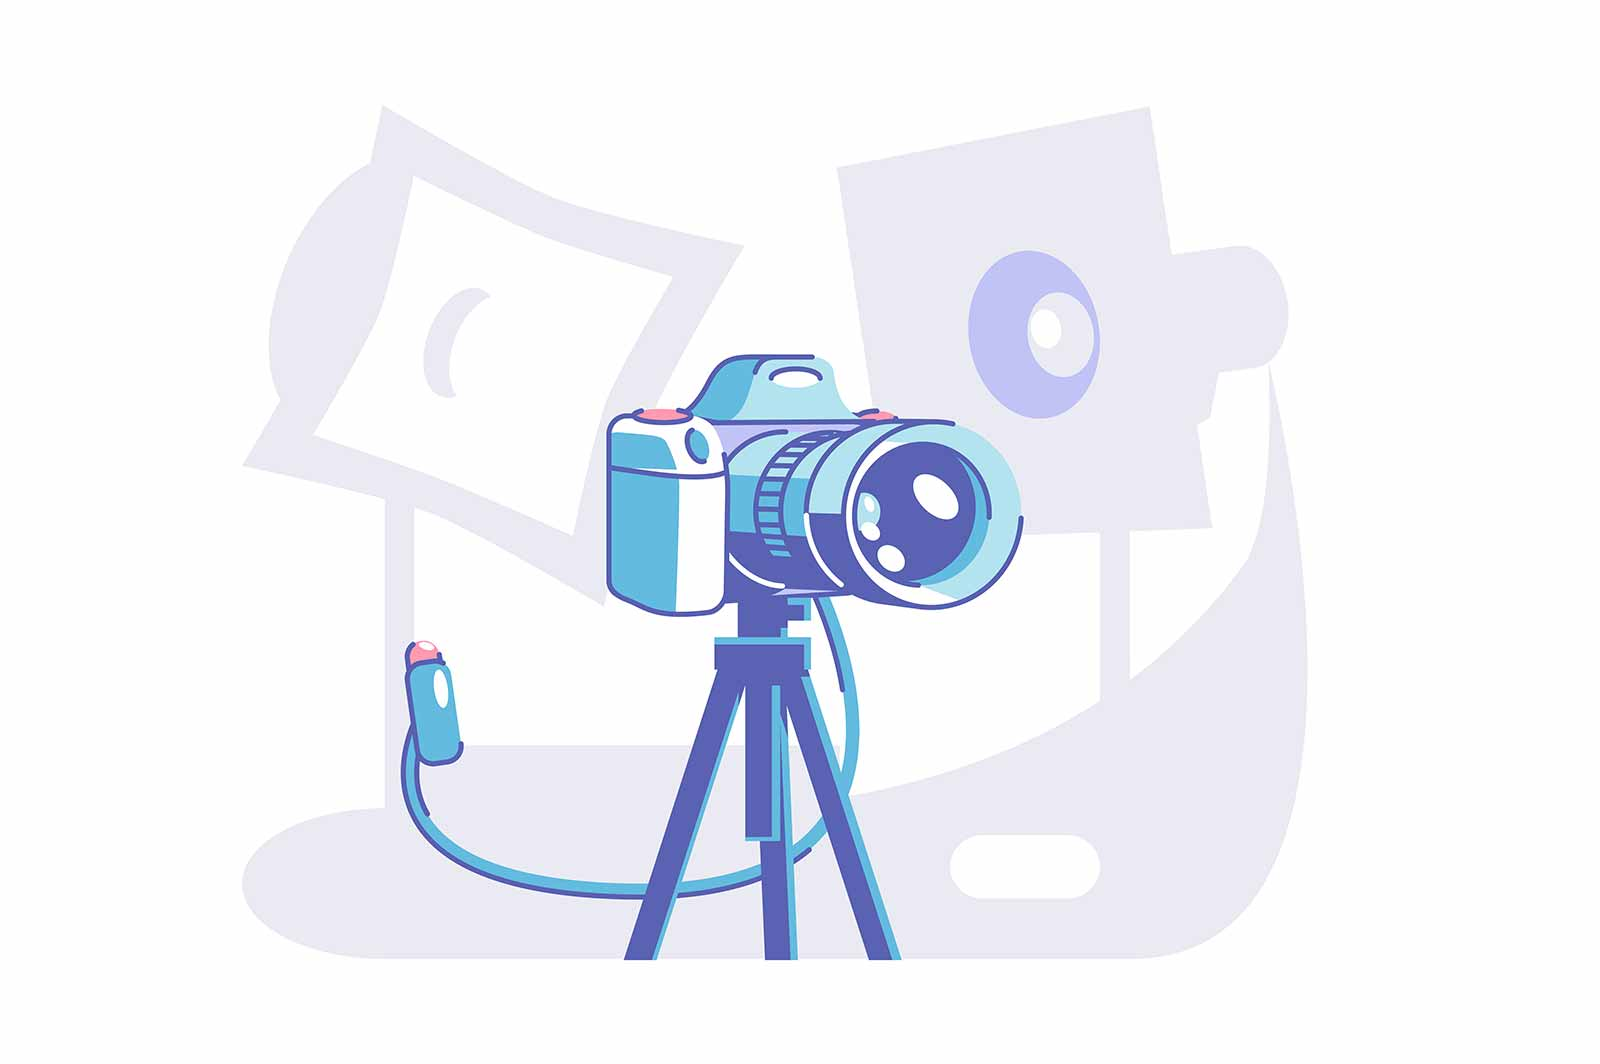 Preparation for professional photoshoot vector illustration. Camera standing on tripod flat style. Special equipment for model. Modern technology concept. Isolated on white background